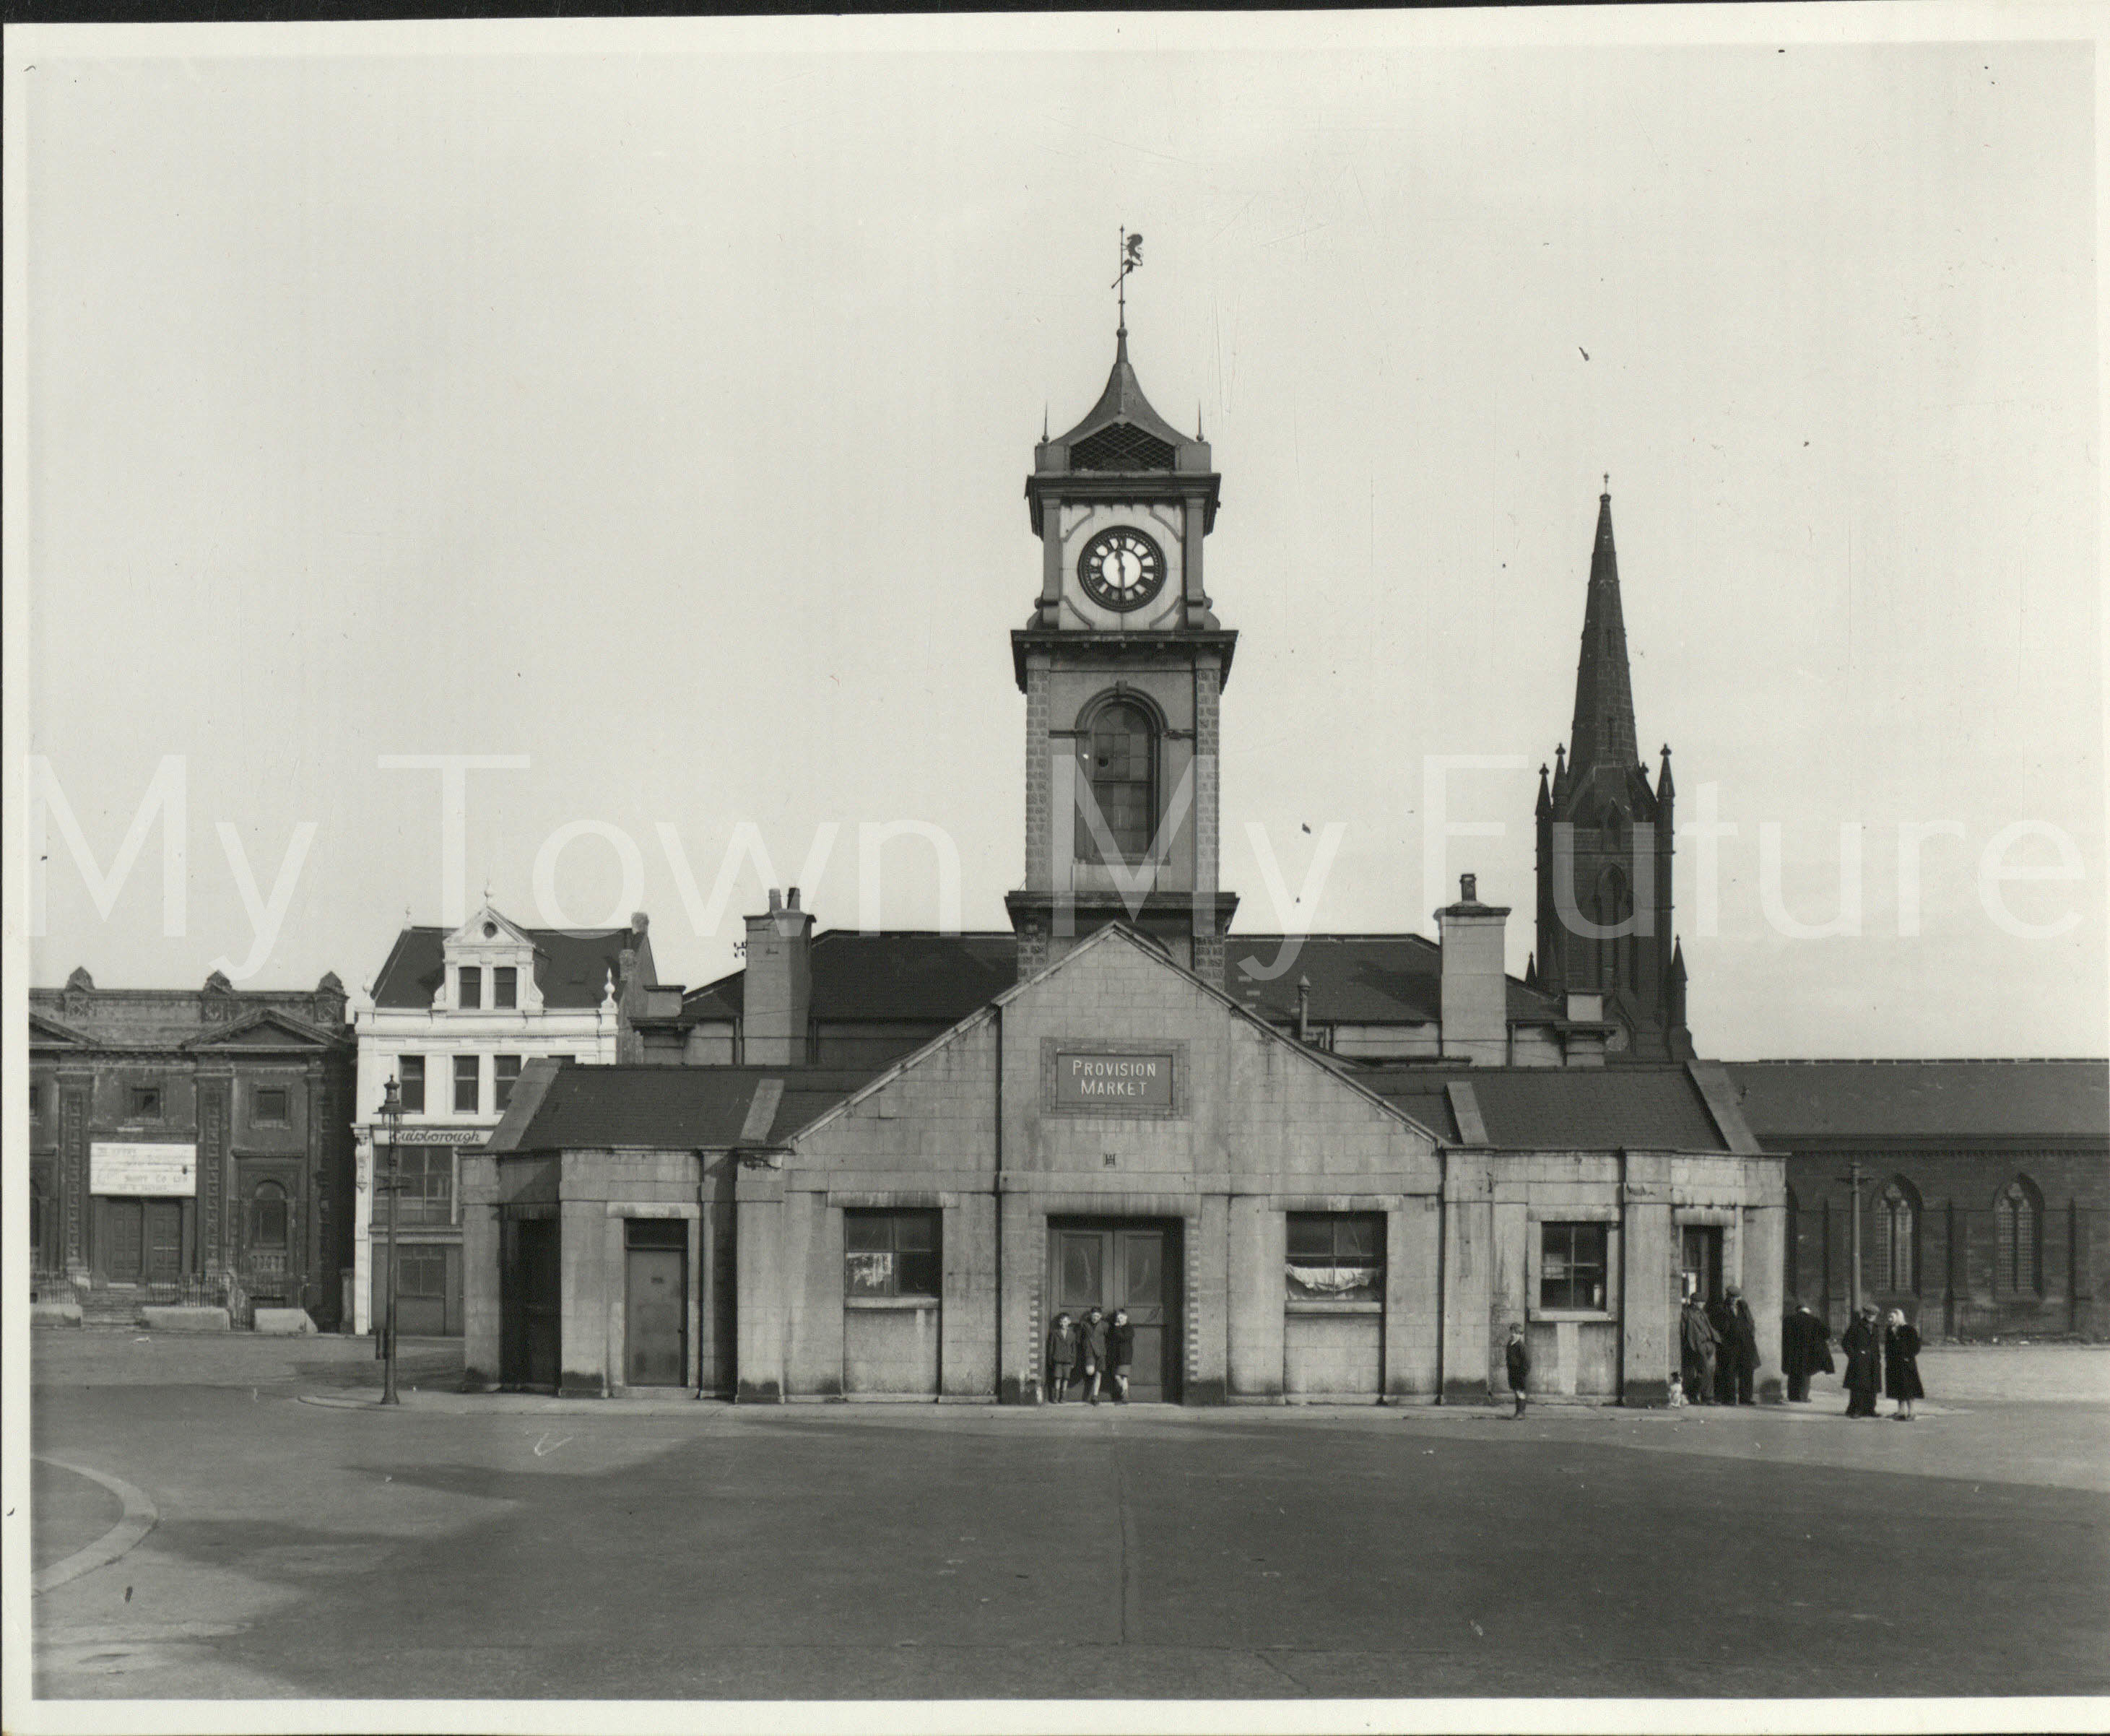 Old Town Hall (Building completed September 1846) - Market Place, St Hilda's Church just behind - Dept. of Planning - Cleveland County Council